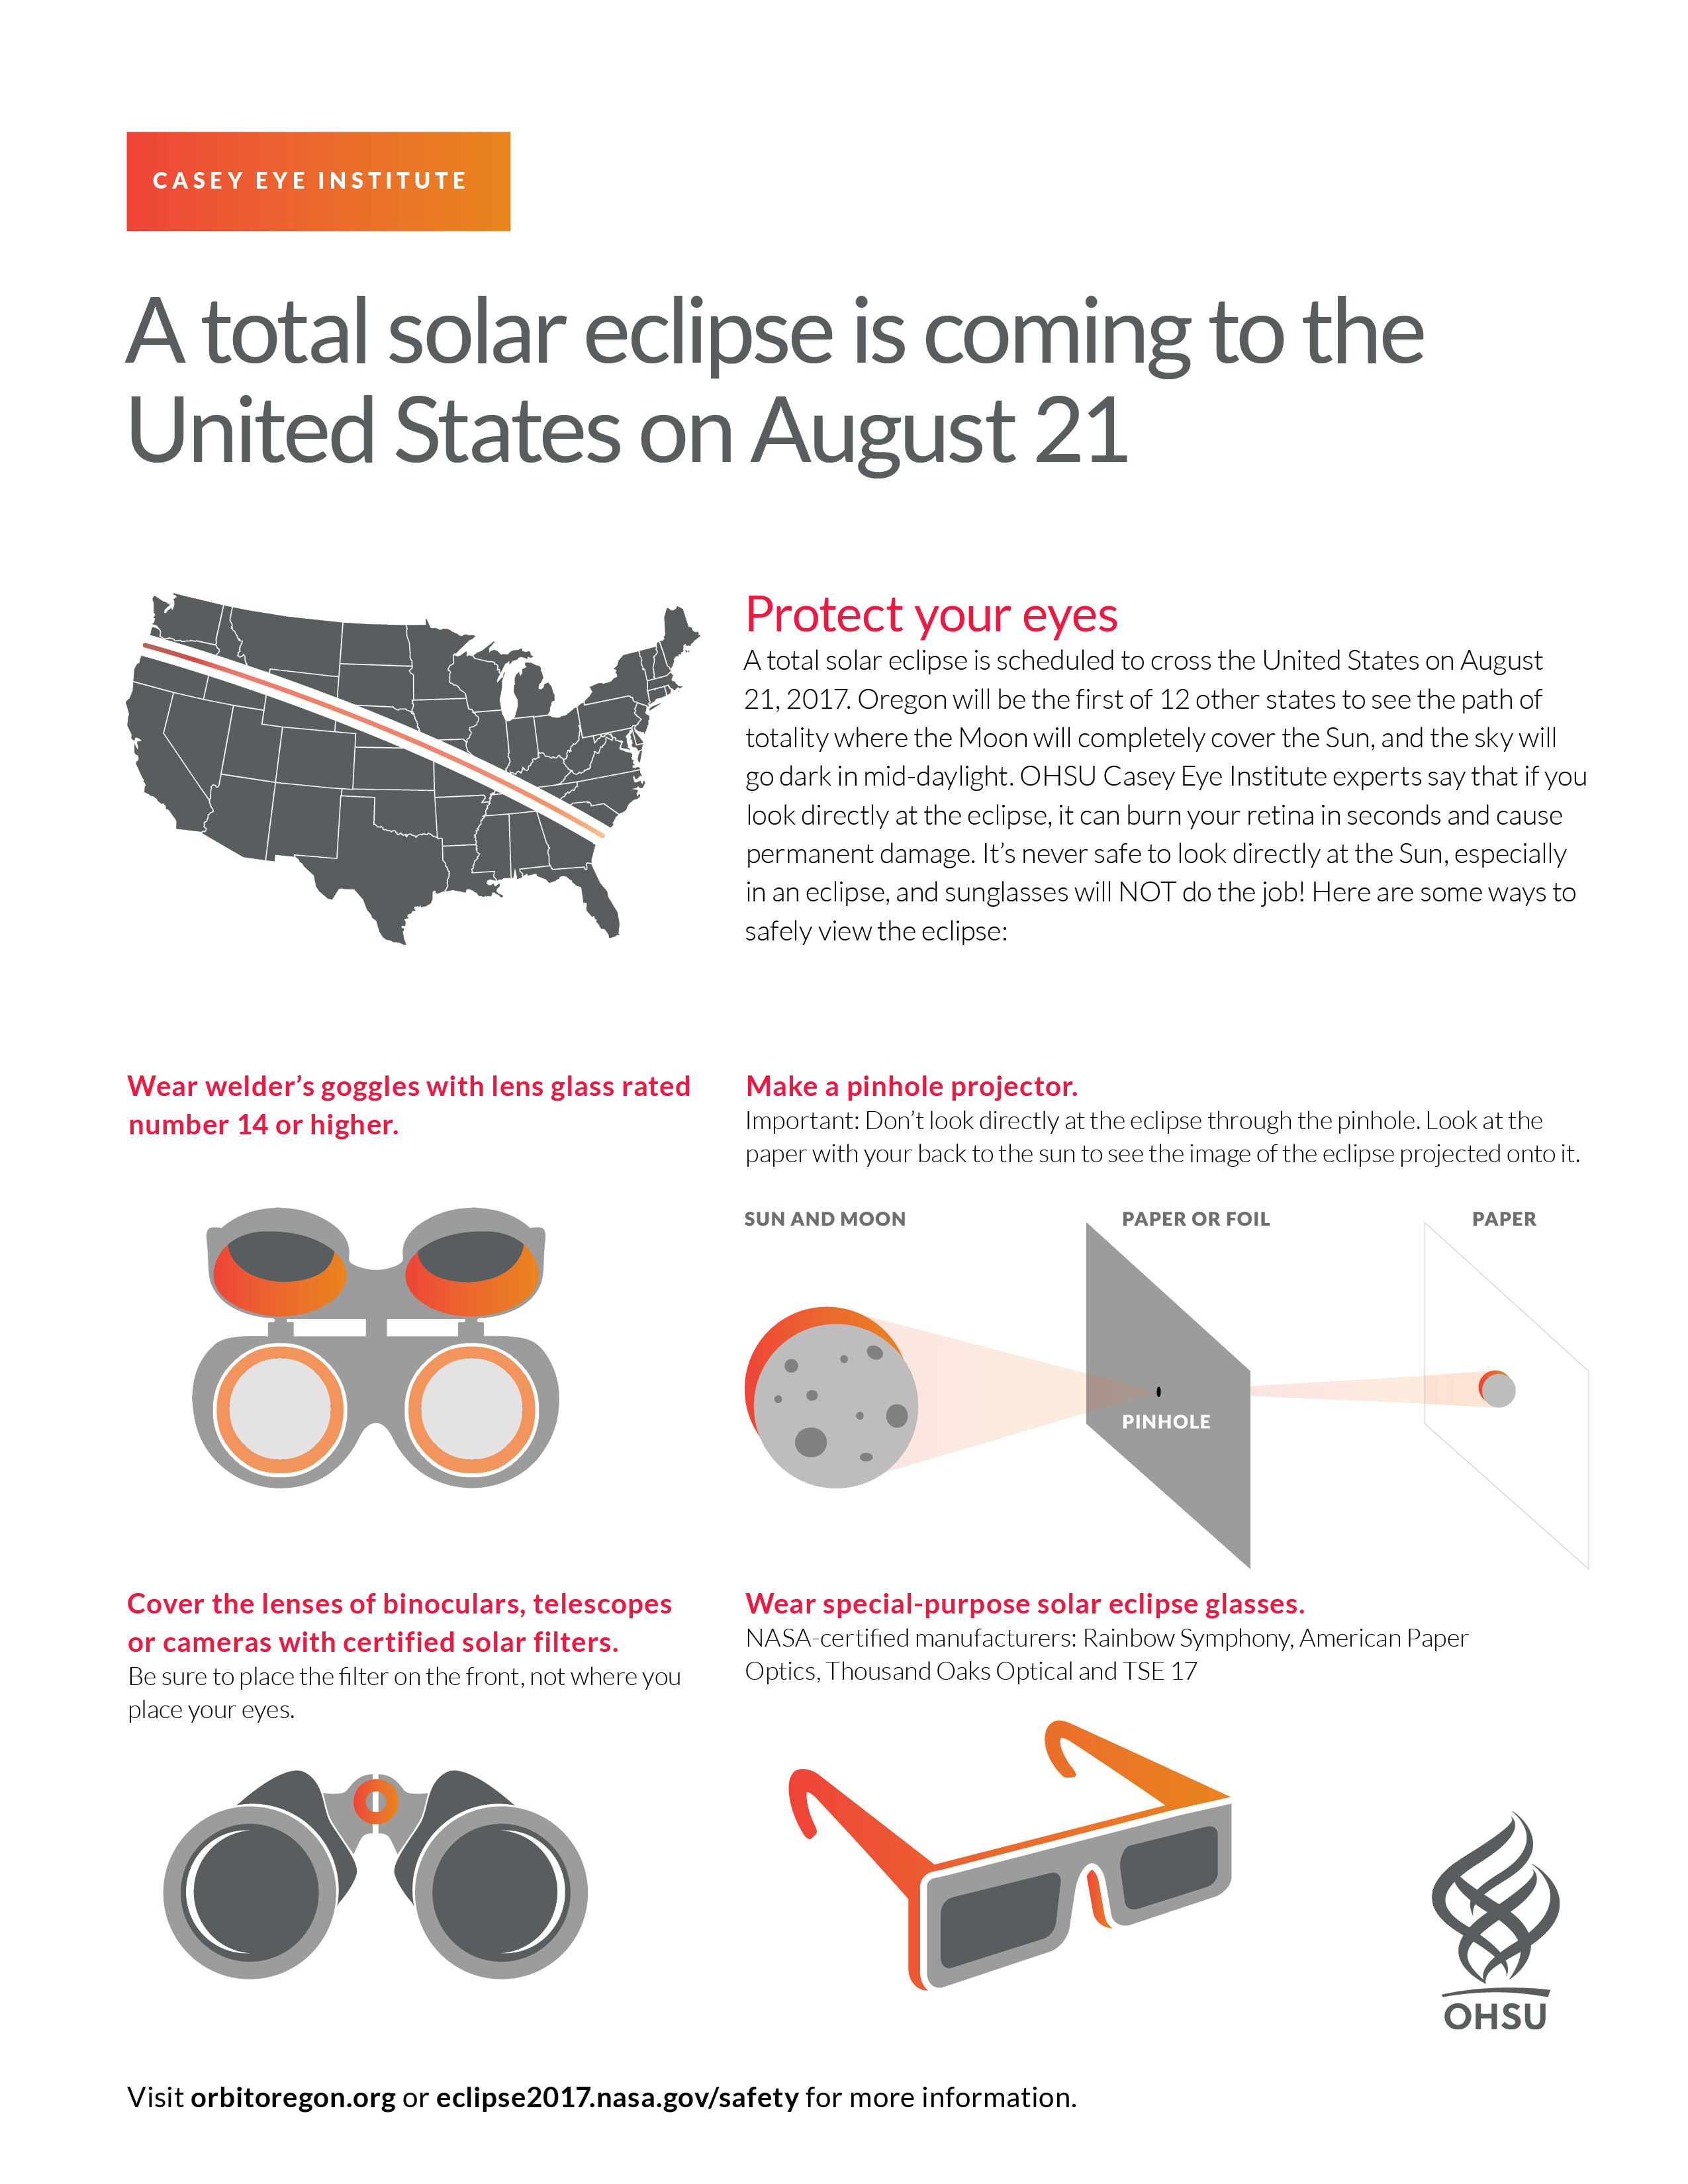 Staring At The Total Solar Eclipse This Summer Can Burn Your Retina